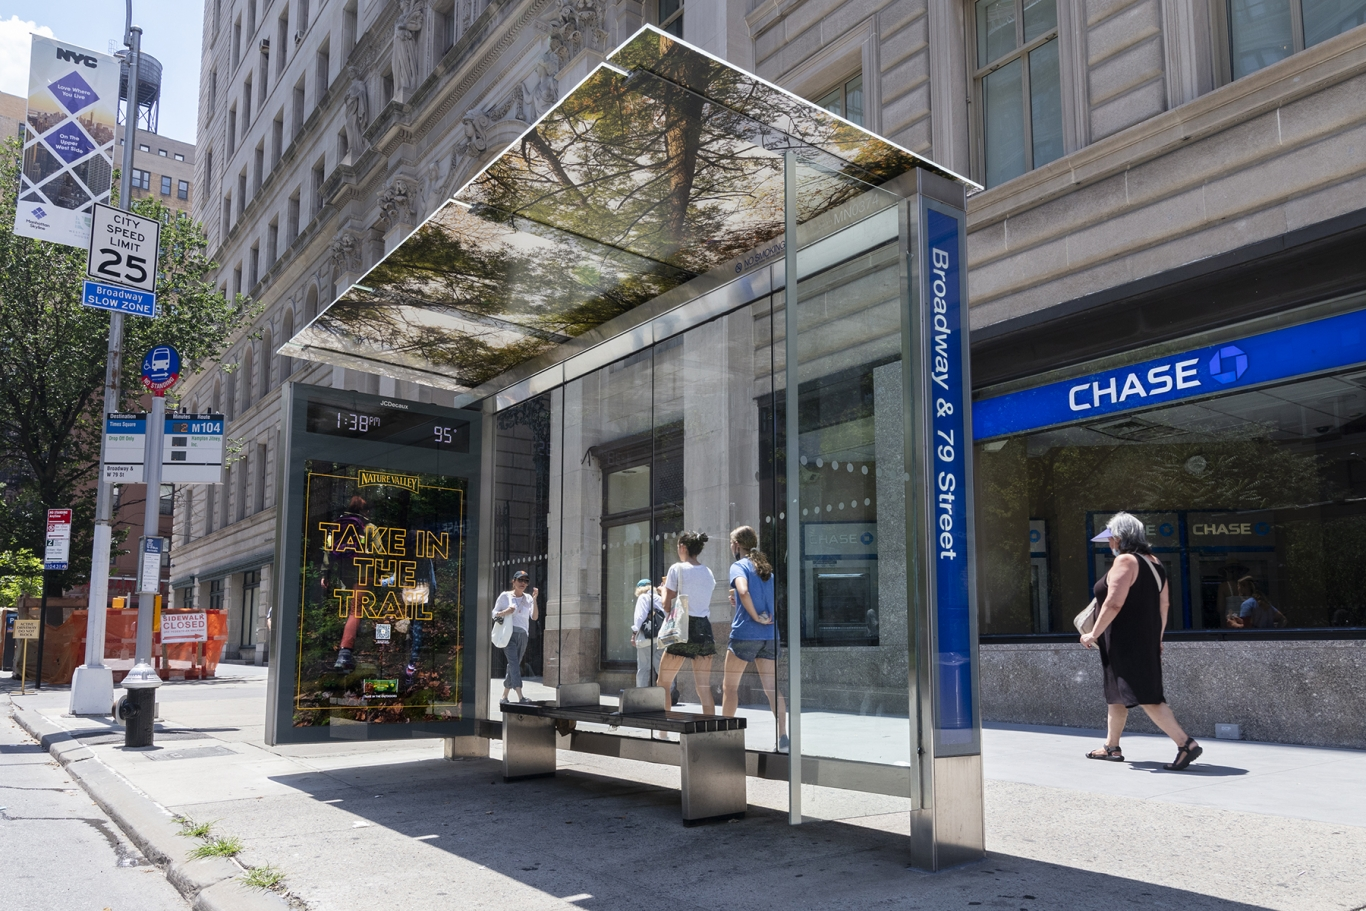 Bus Shelter innovate with nature valley creative and ceiling wrap